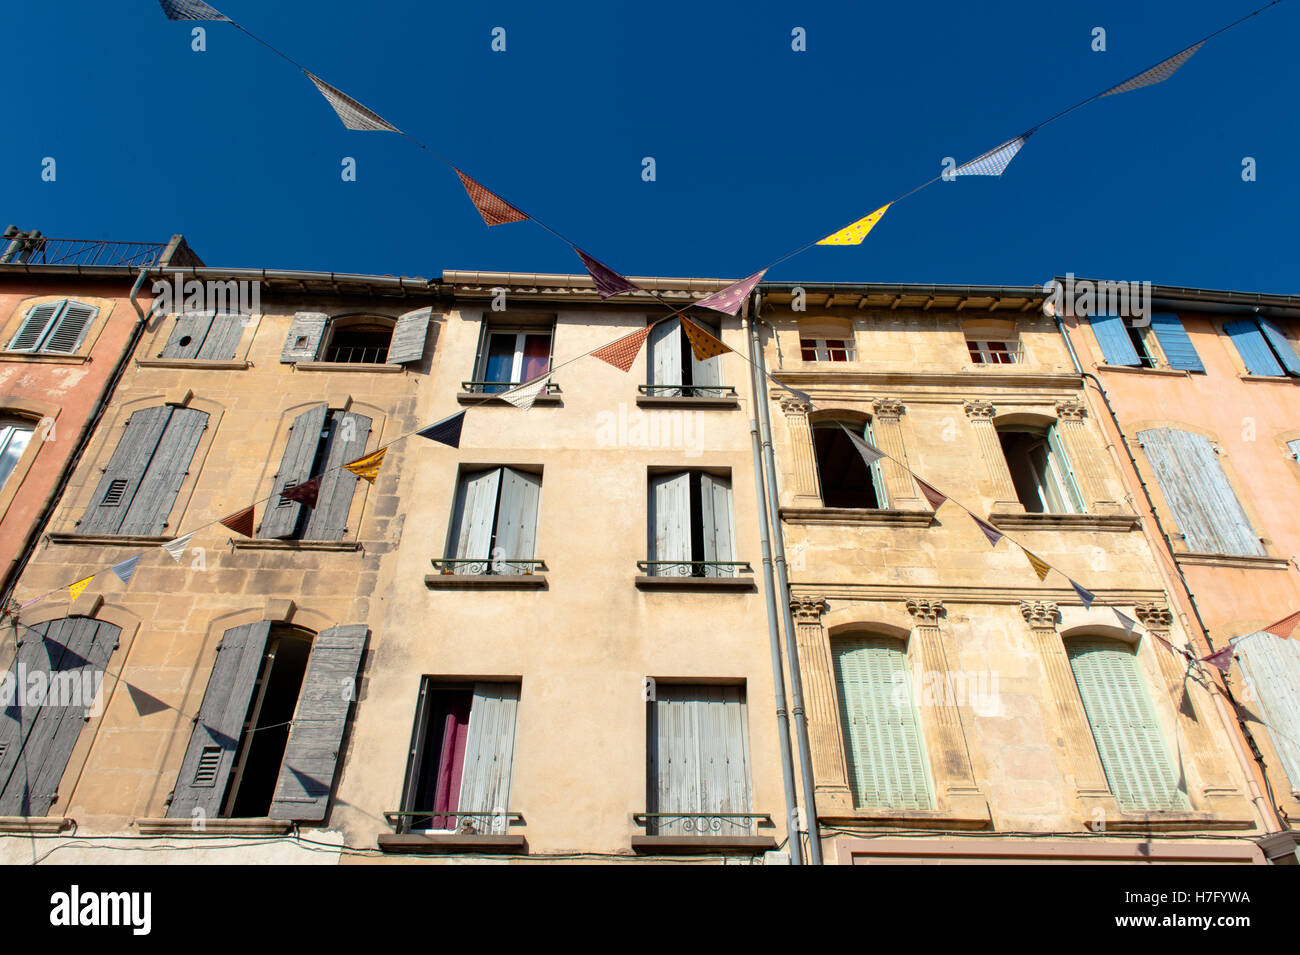 Traditional Provence homes in the town centre of Tarascon, featuring pastel-couloured window shields, France, - Stock Image